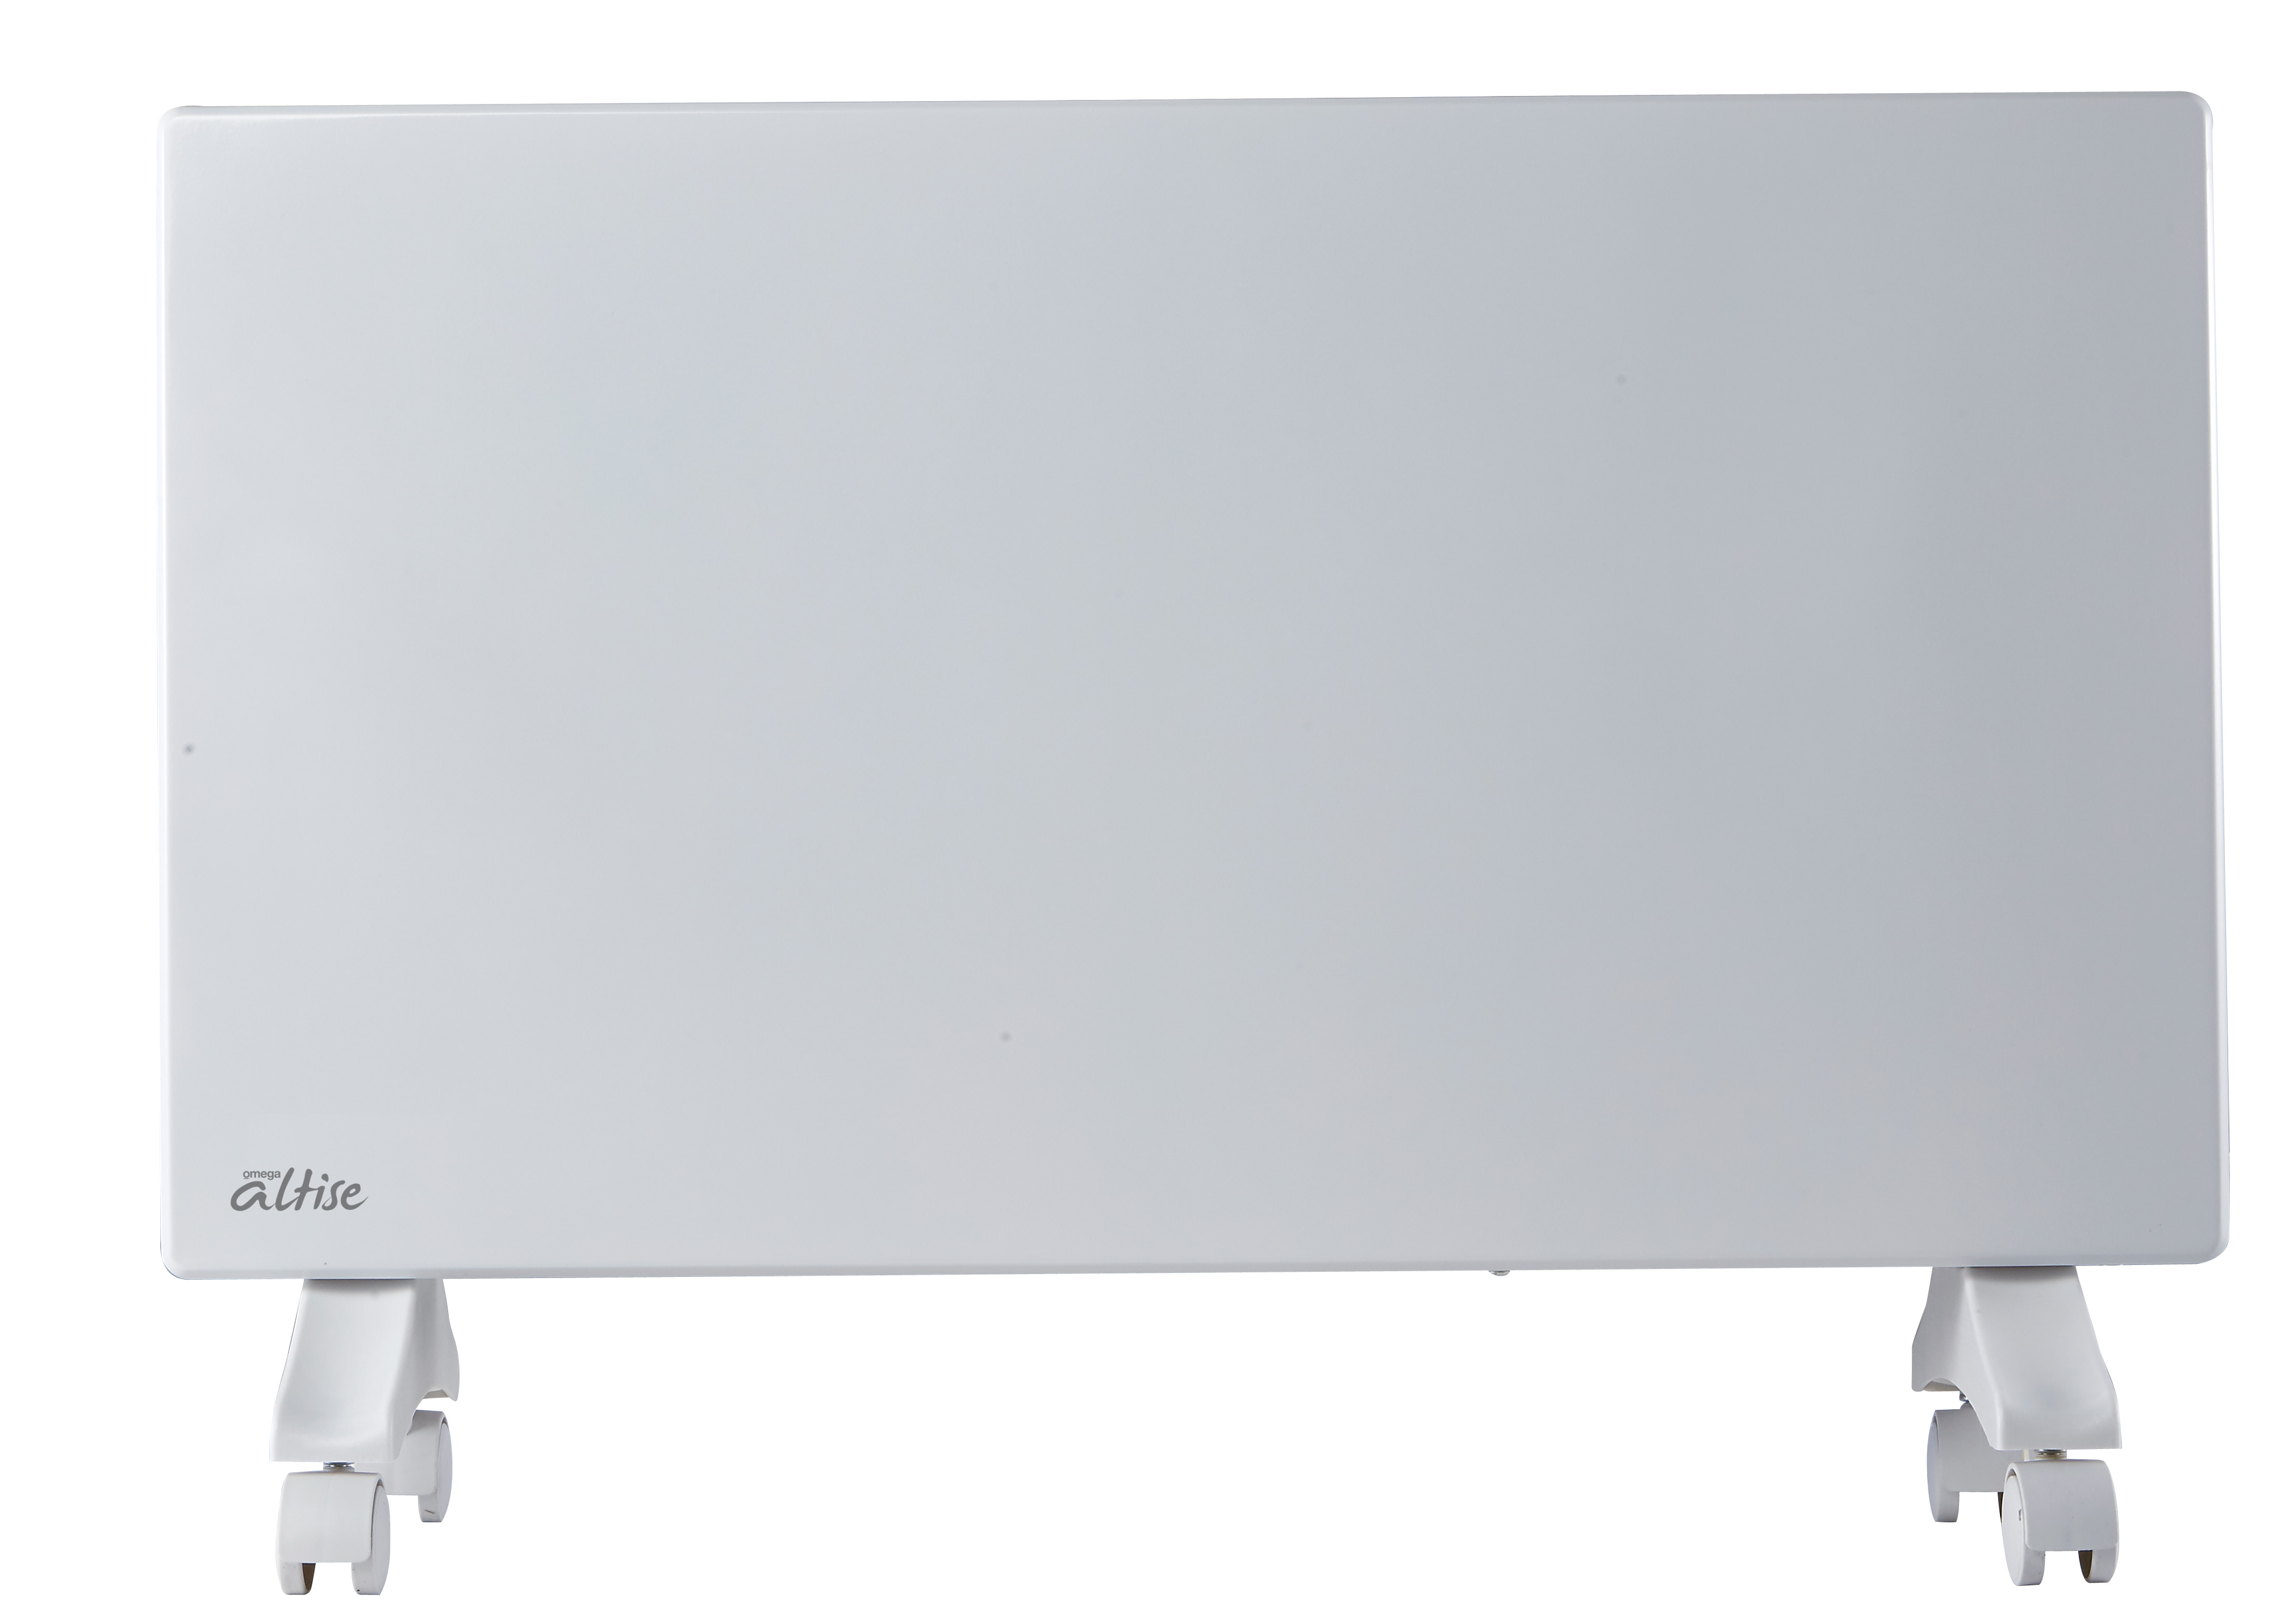 Omega Altise product Panel Convection Heater with LED Display - White 2000W  OAPE2000W